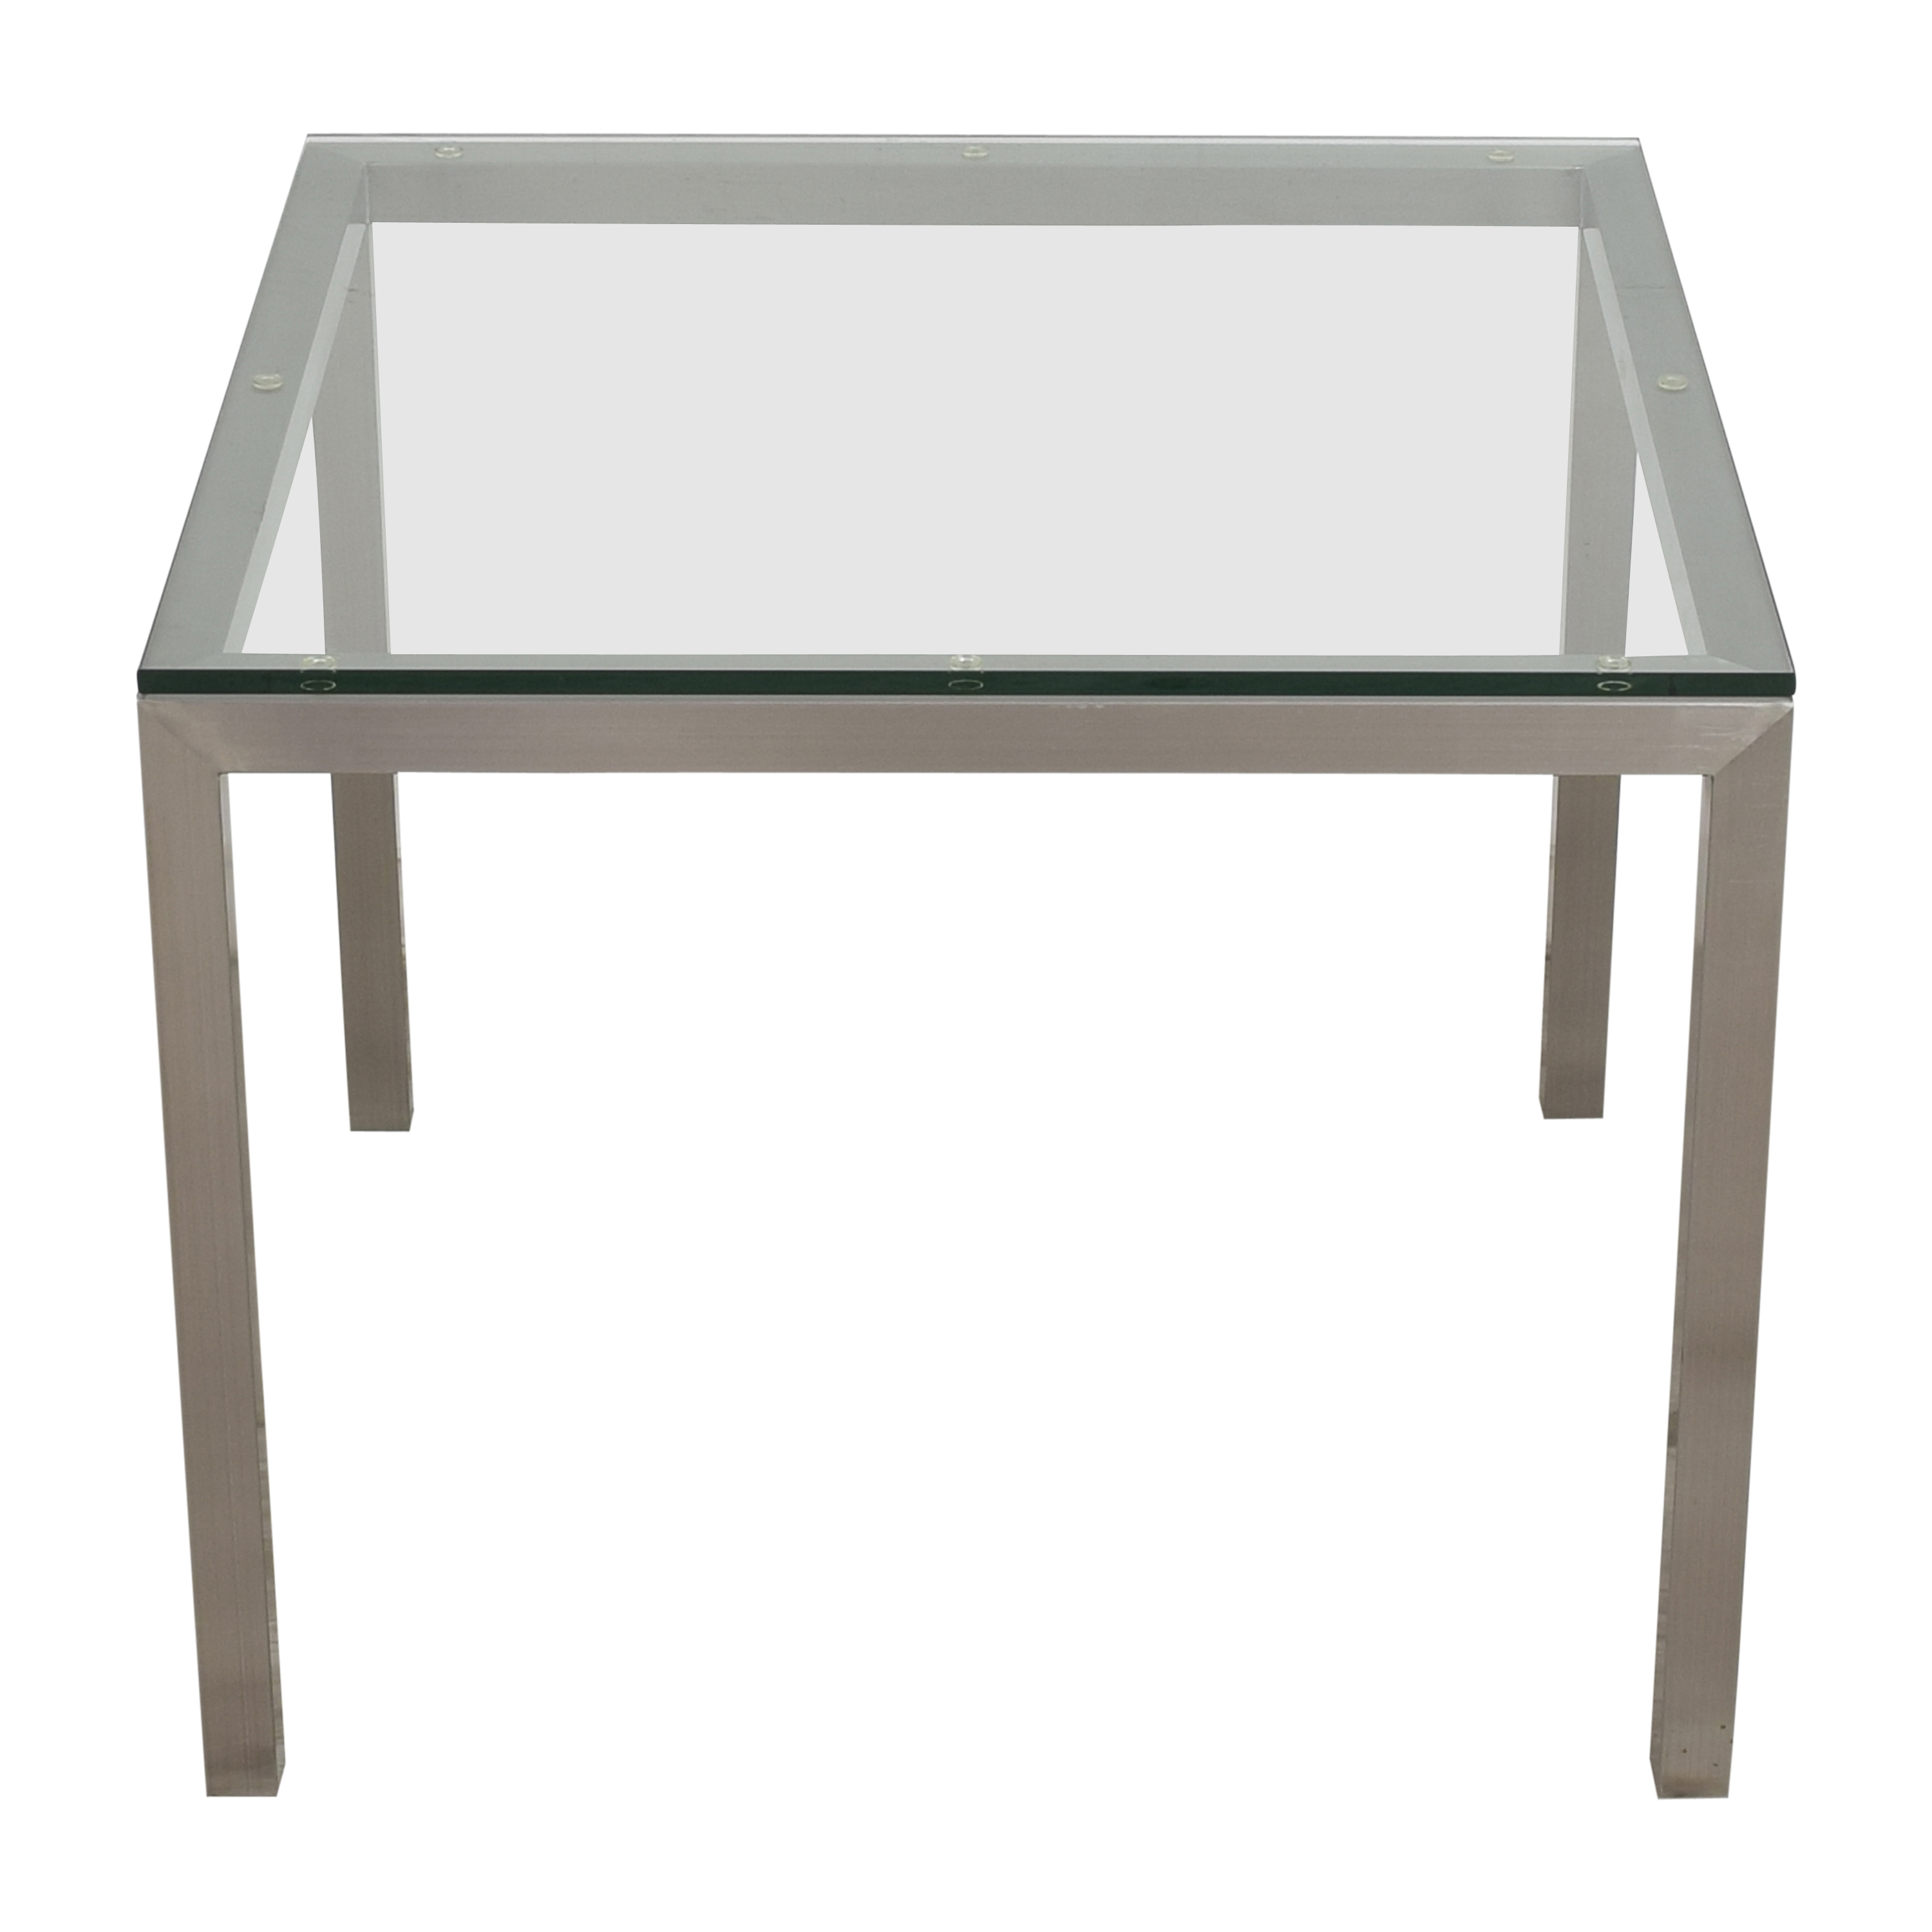 Crate & Barrel Crate & Barrel Parsons Square Dining Table ct